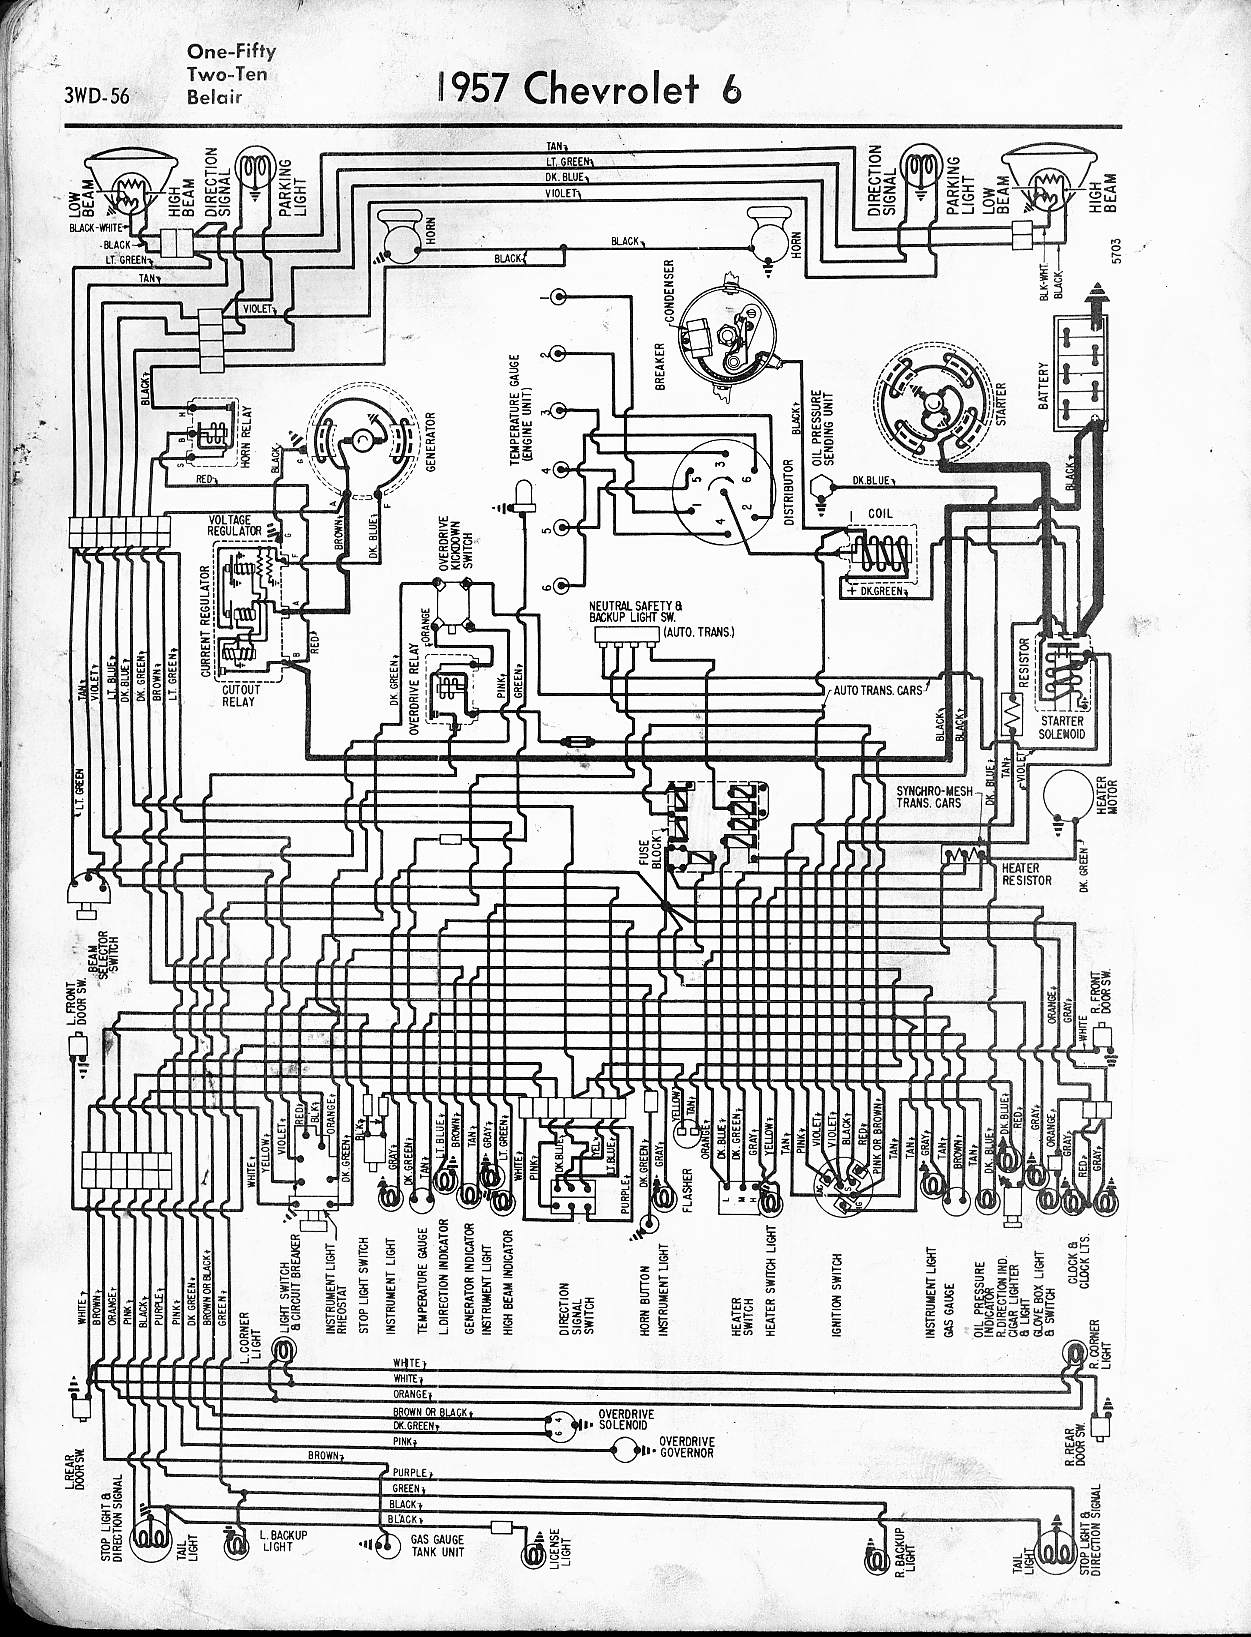 1957 Chevy Fuse Box Wiring | Schematic Diagram on 1955 chevy truck seat, 1955 chevy truck bumpers, 1955 chevy truck repair manual, 1955 chevy truck boxing plates, 1955 chevy truck mirrors, 1955 chevy truck windshield, 1955 chevy truck lowering kit, 1955 chevy truck engine, 1955 chevy truck aluminum radiator, 1955 chevy truck door sill, 1955 chevy truck dash panel, 1955 chevy truck hood, 1955 chevy wiring diagram, 1955 chevy truck shifter, 1955 chevy truck heater core, 1955 chevy truck motor mounts, 1955 chevy truck front axle, 1955 chevy truck spark plug wires, 1955 chevy truck horn, 1955 chevy truck accessories,